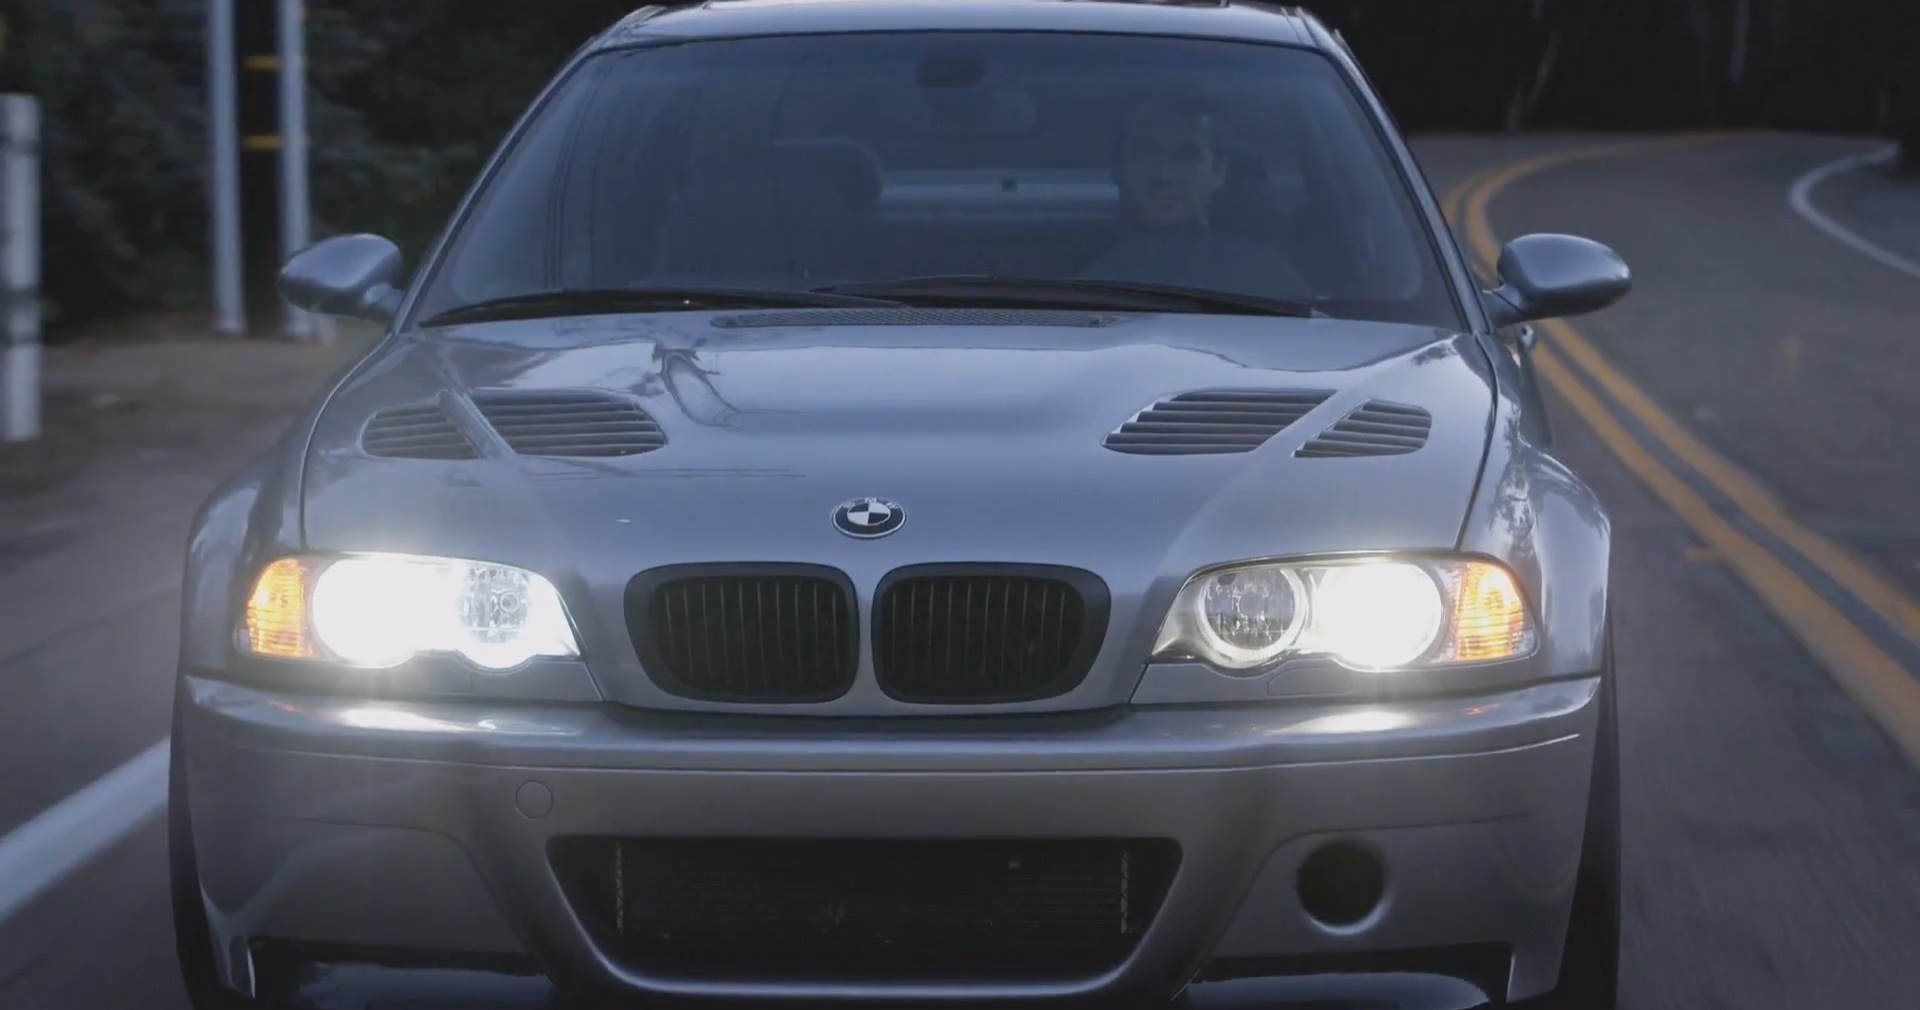 Danny Way Talks About His Bmw E46 M3 In Front Of The Camera